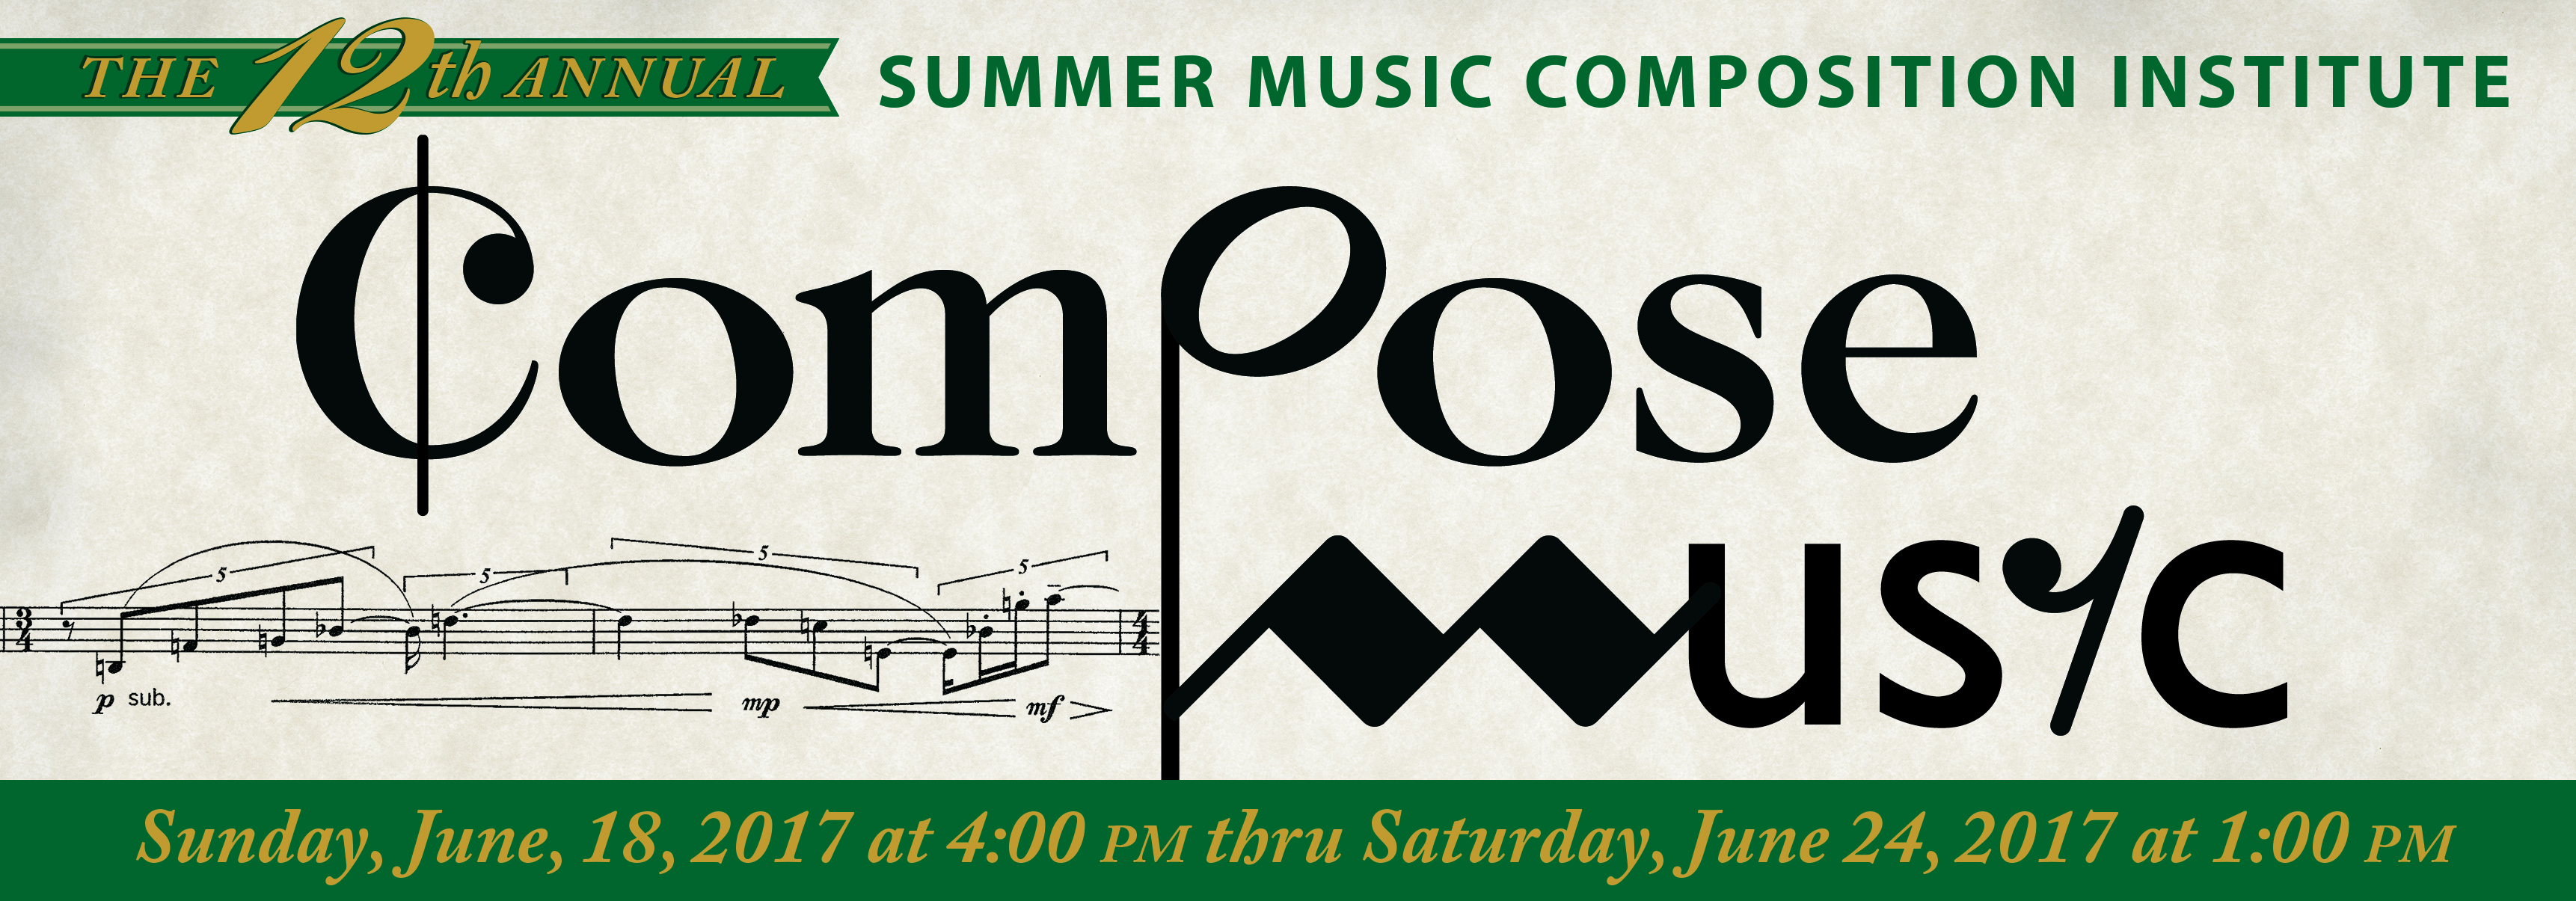 Summer Music Composition Institute